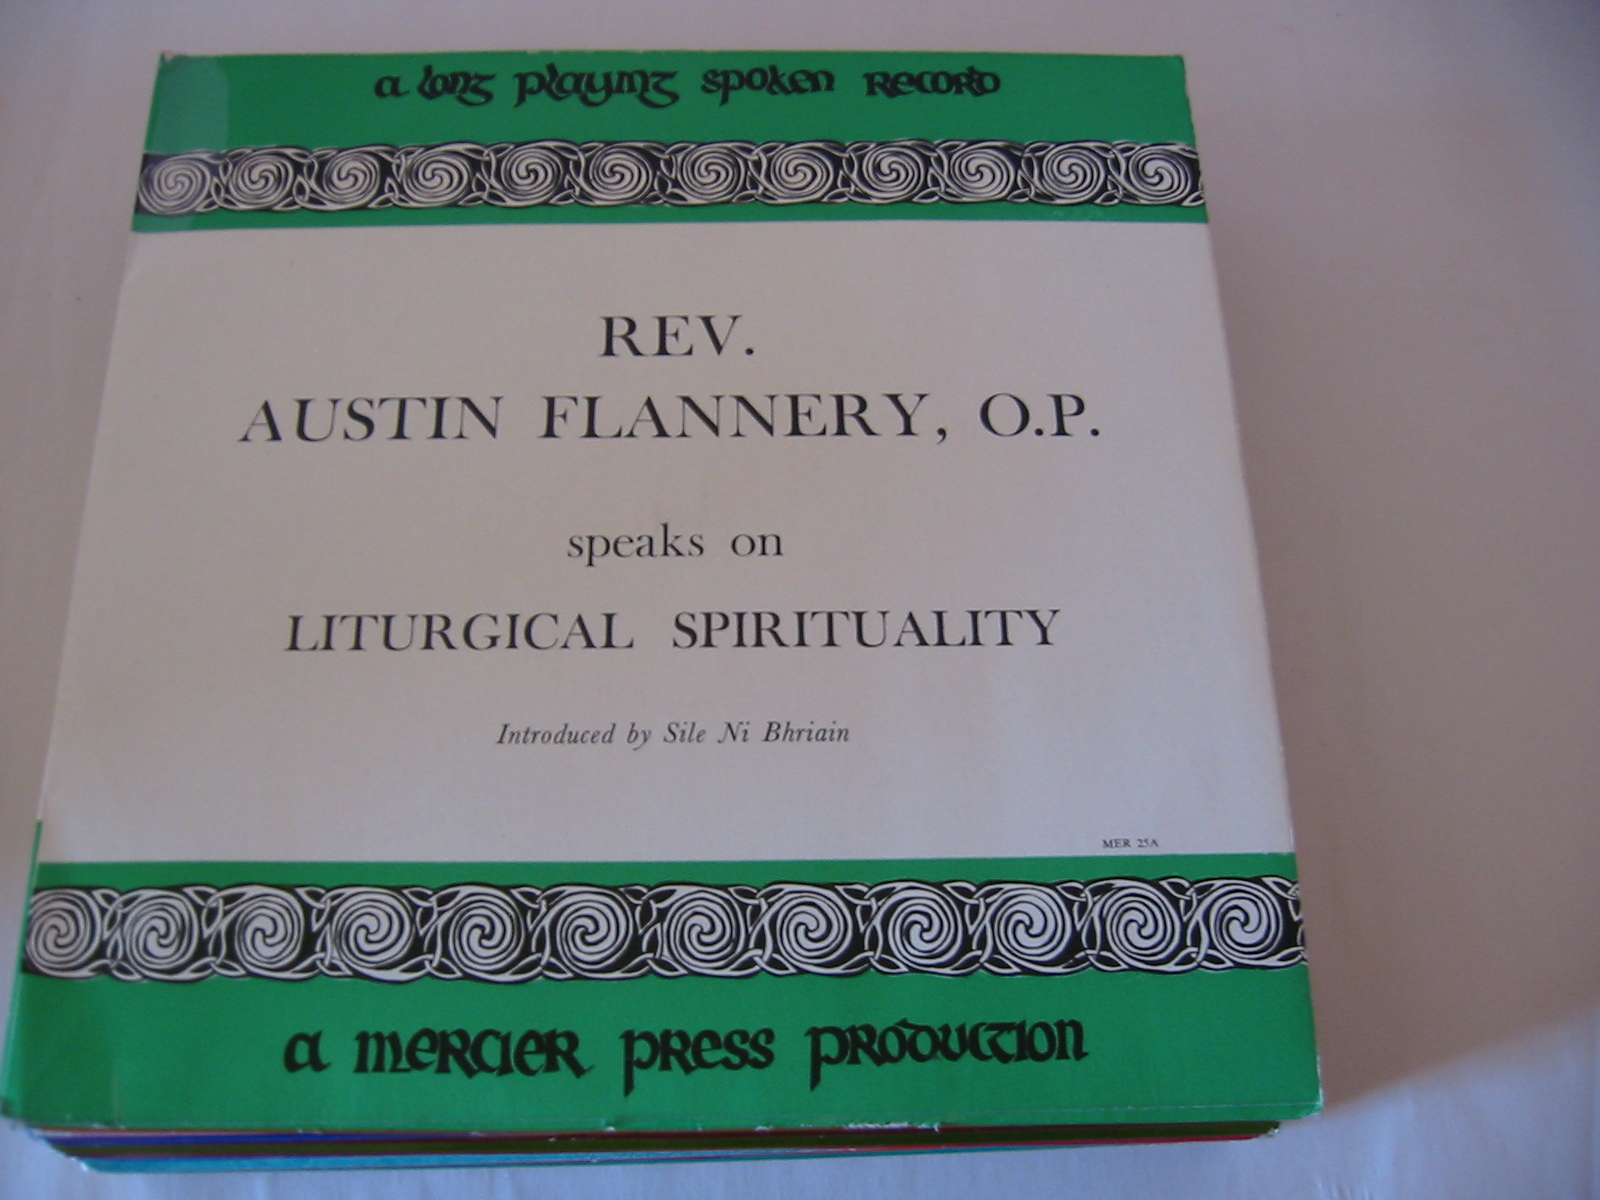 MER 25 - Austin Flannery & Reginald Masterson - Mercier Press